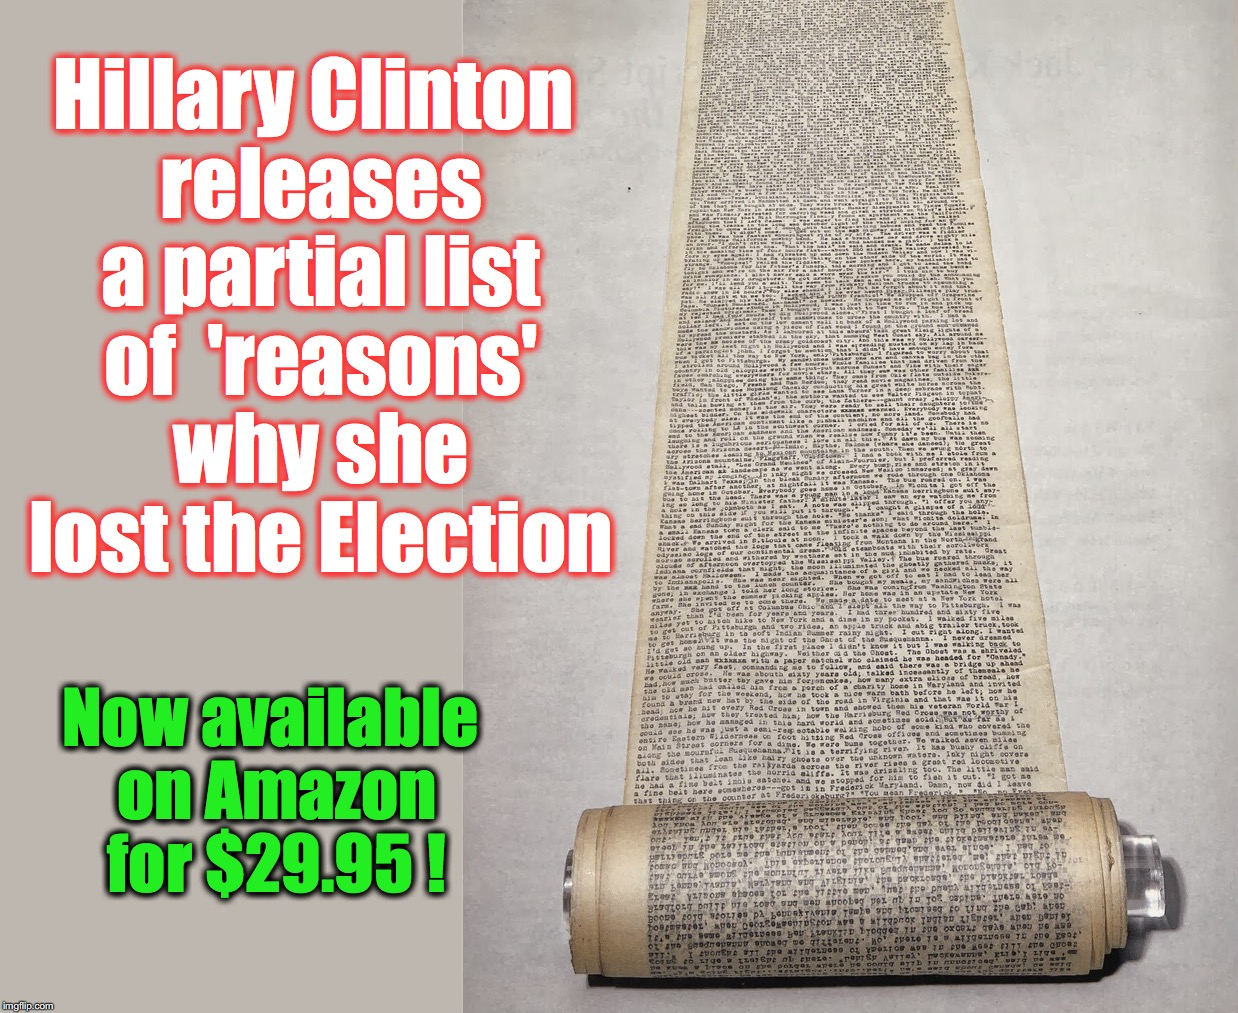 just in time for the Halloween shopping season? | Hillary Clinton releases a partial list of  'reasons' why she lost the Election Now available on Amazon for $29.95 ! | image tagged in hillary clinton | made w/ Imgflip meme maker